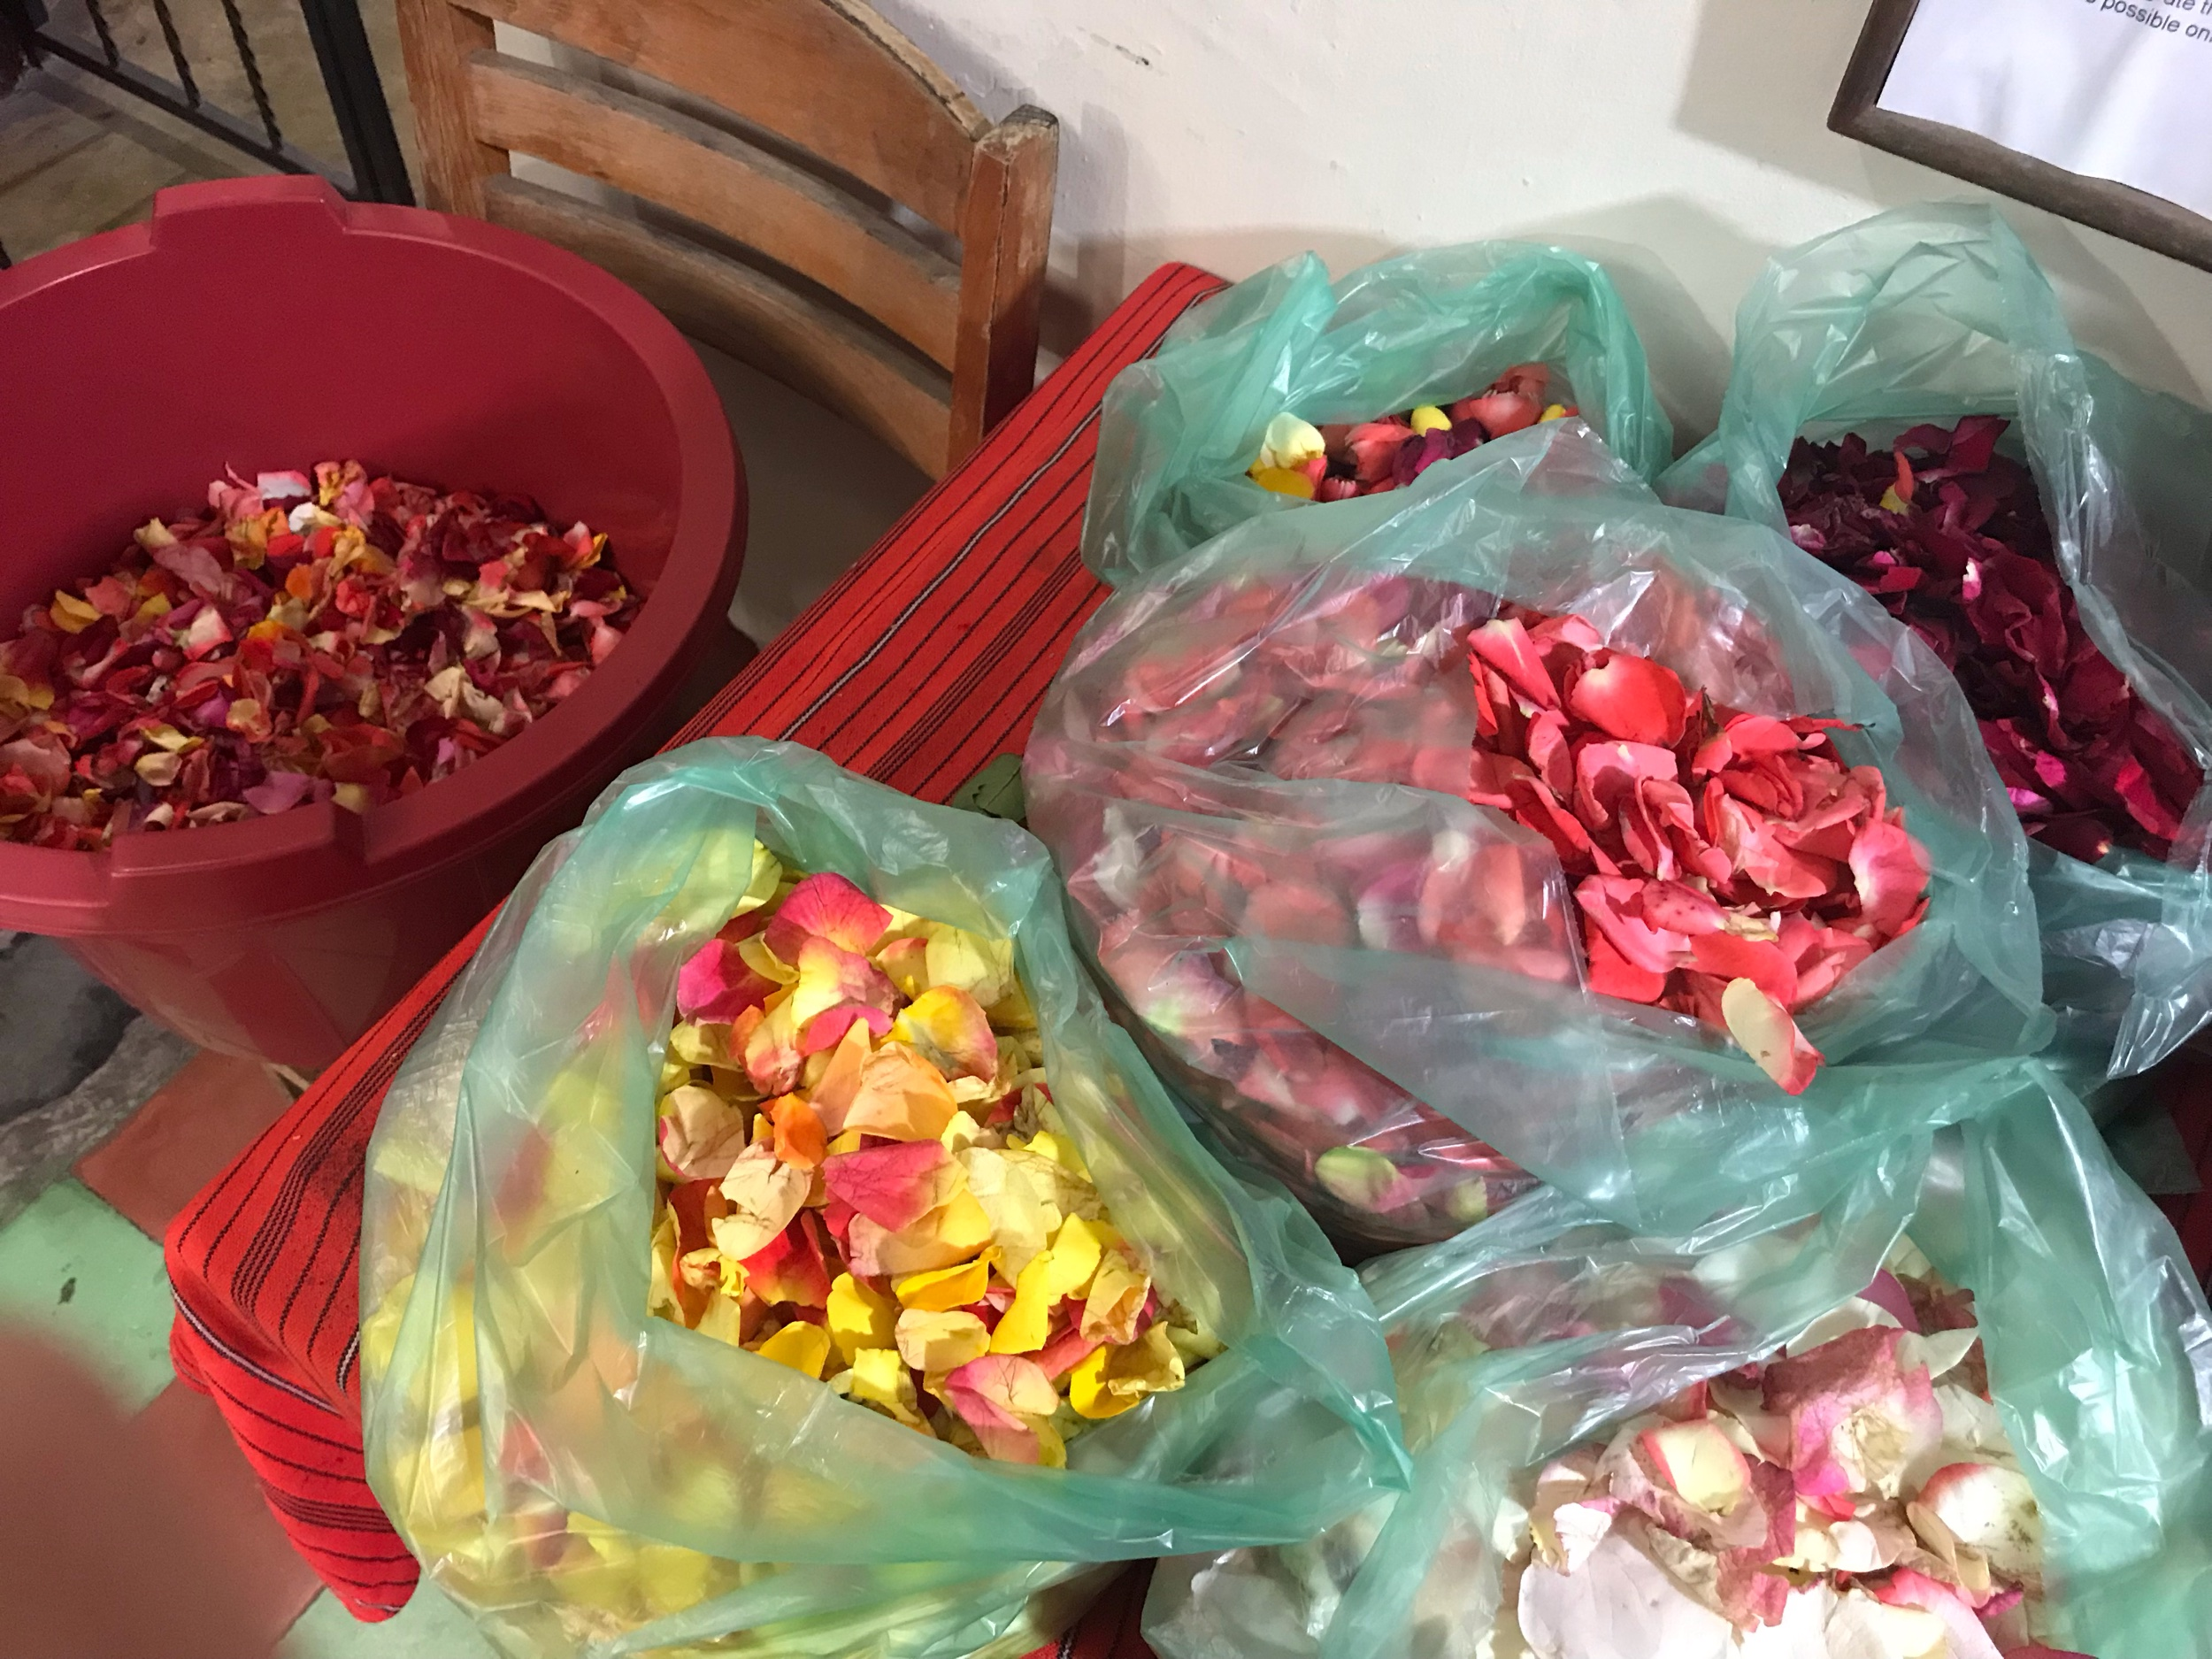 Sorting rose petals by color